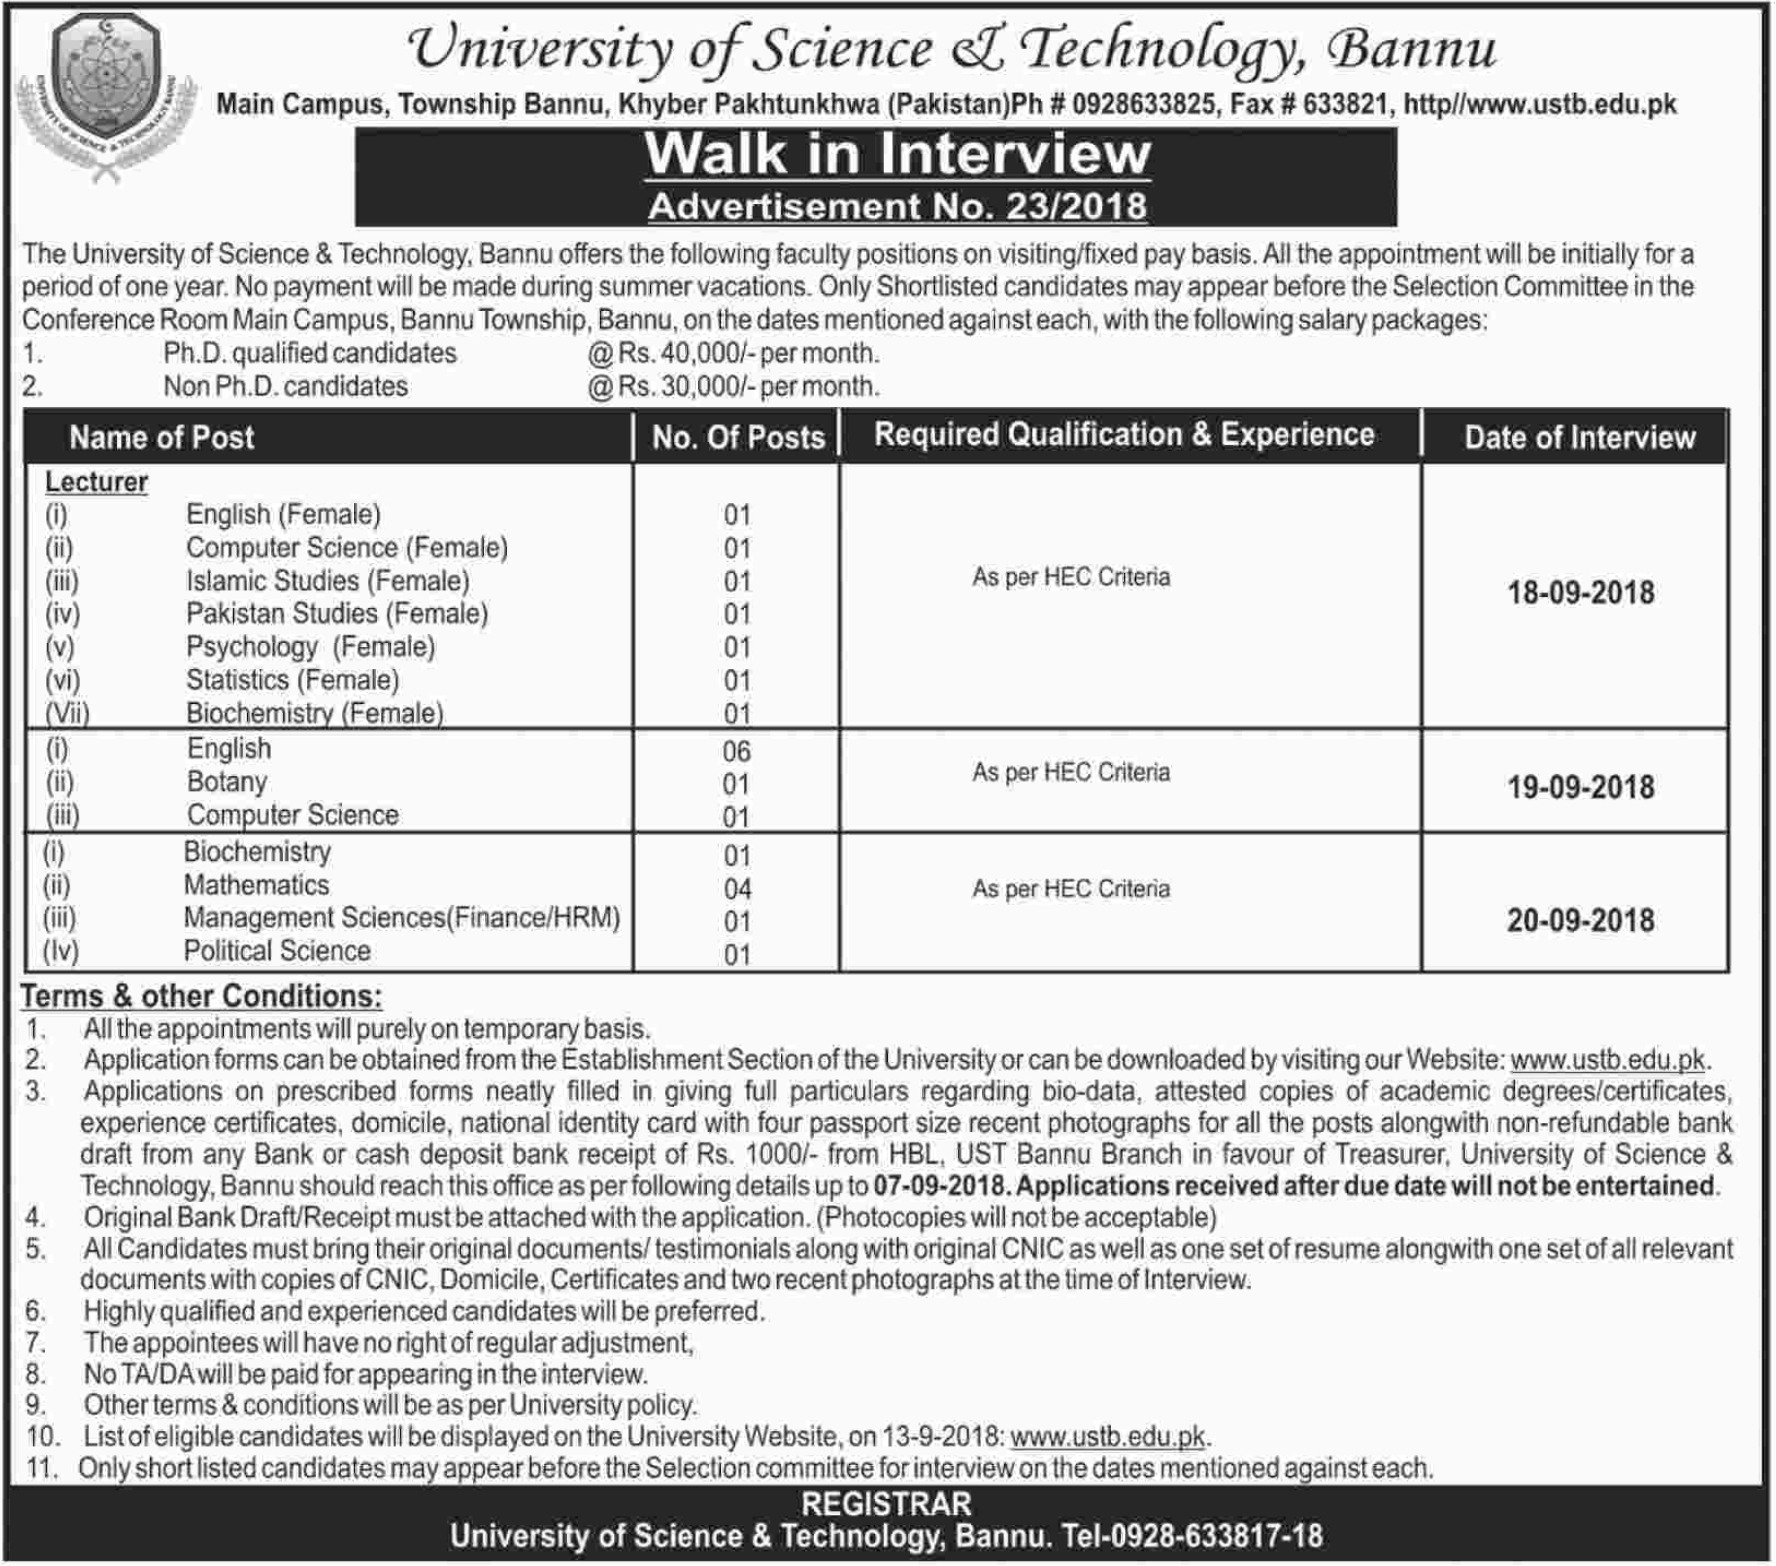 University of Science & Technology Bannu USTB Jobs 2018